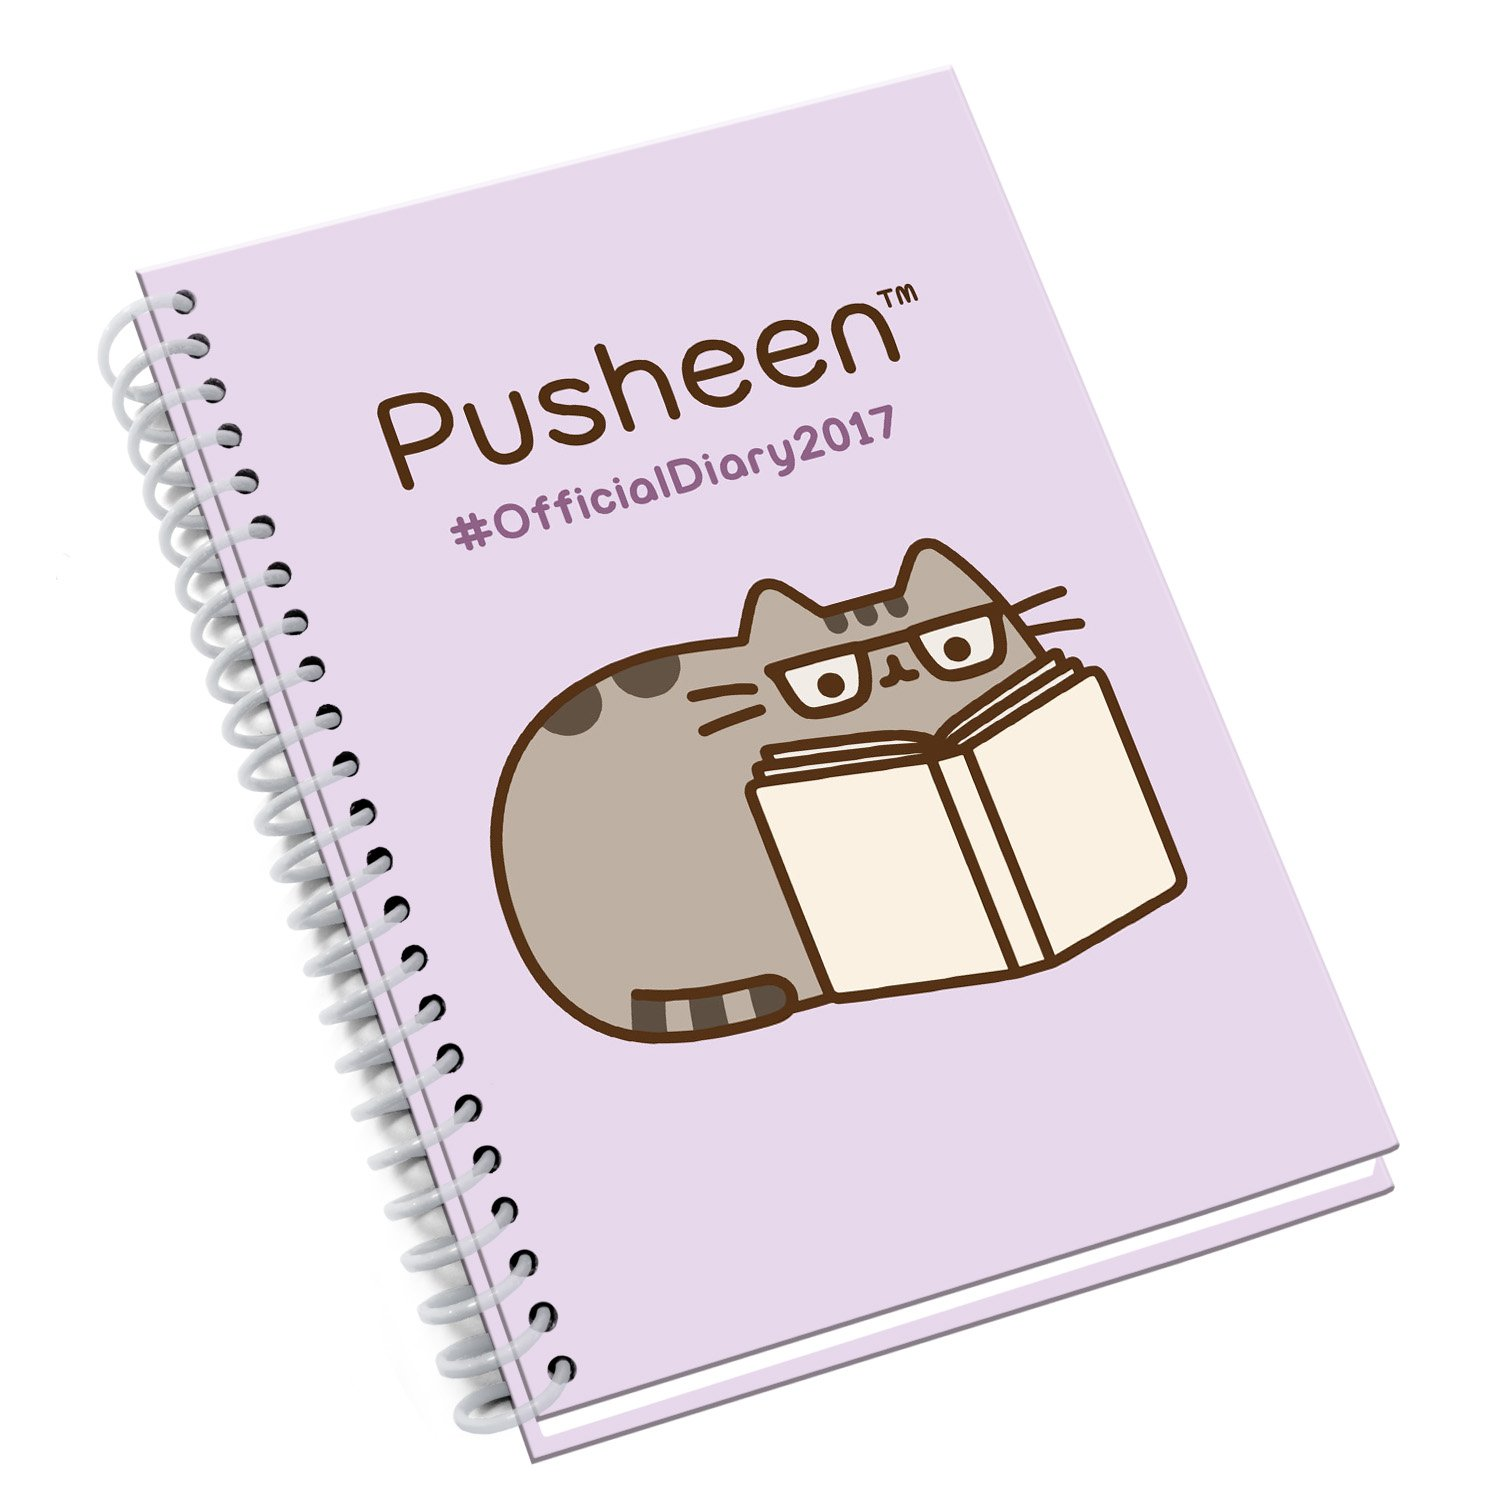 Pusheen Official 2017 Diary (A5): Amazon.es: Danilo: Libros ...